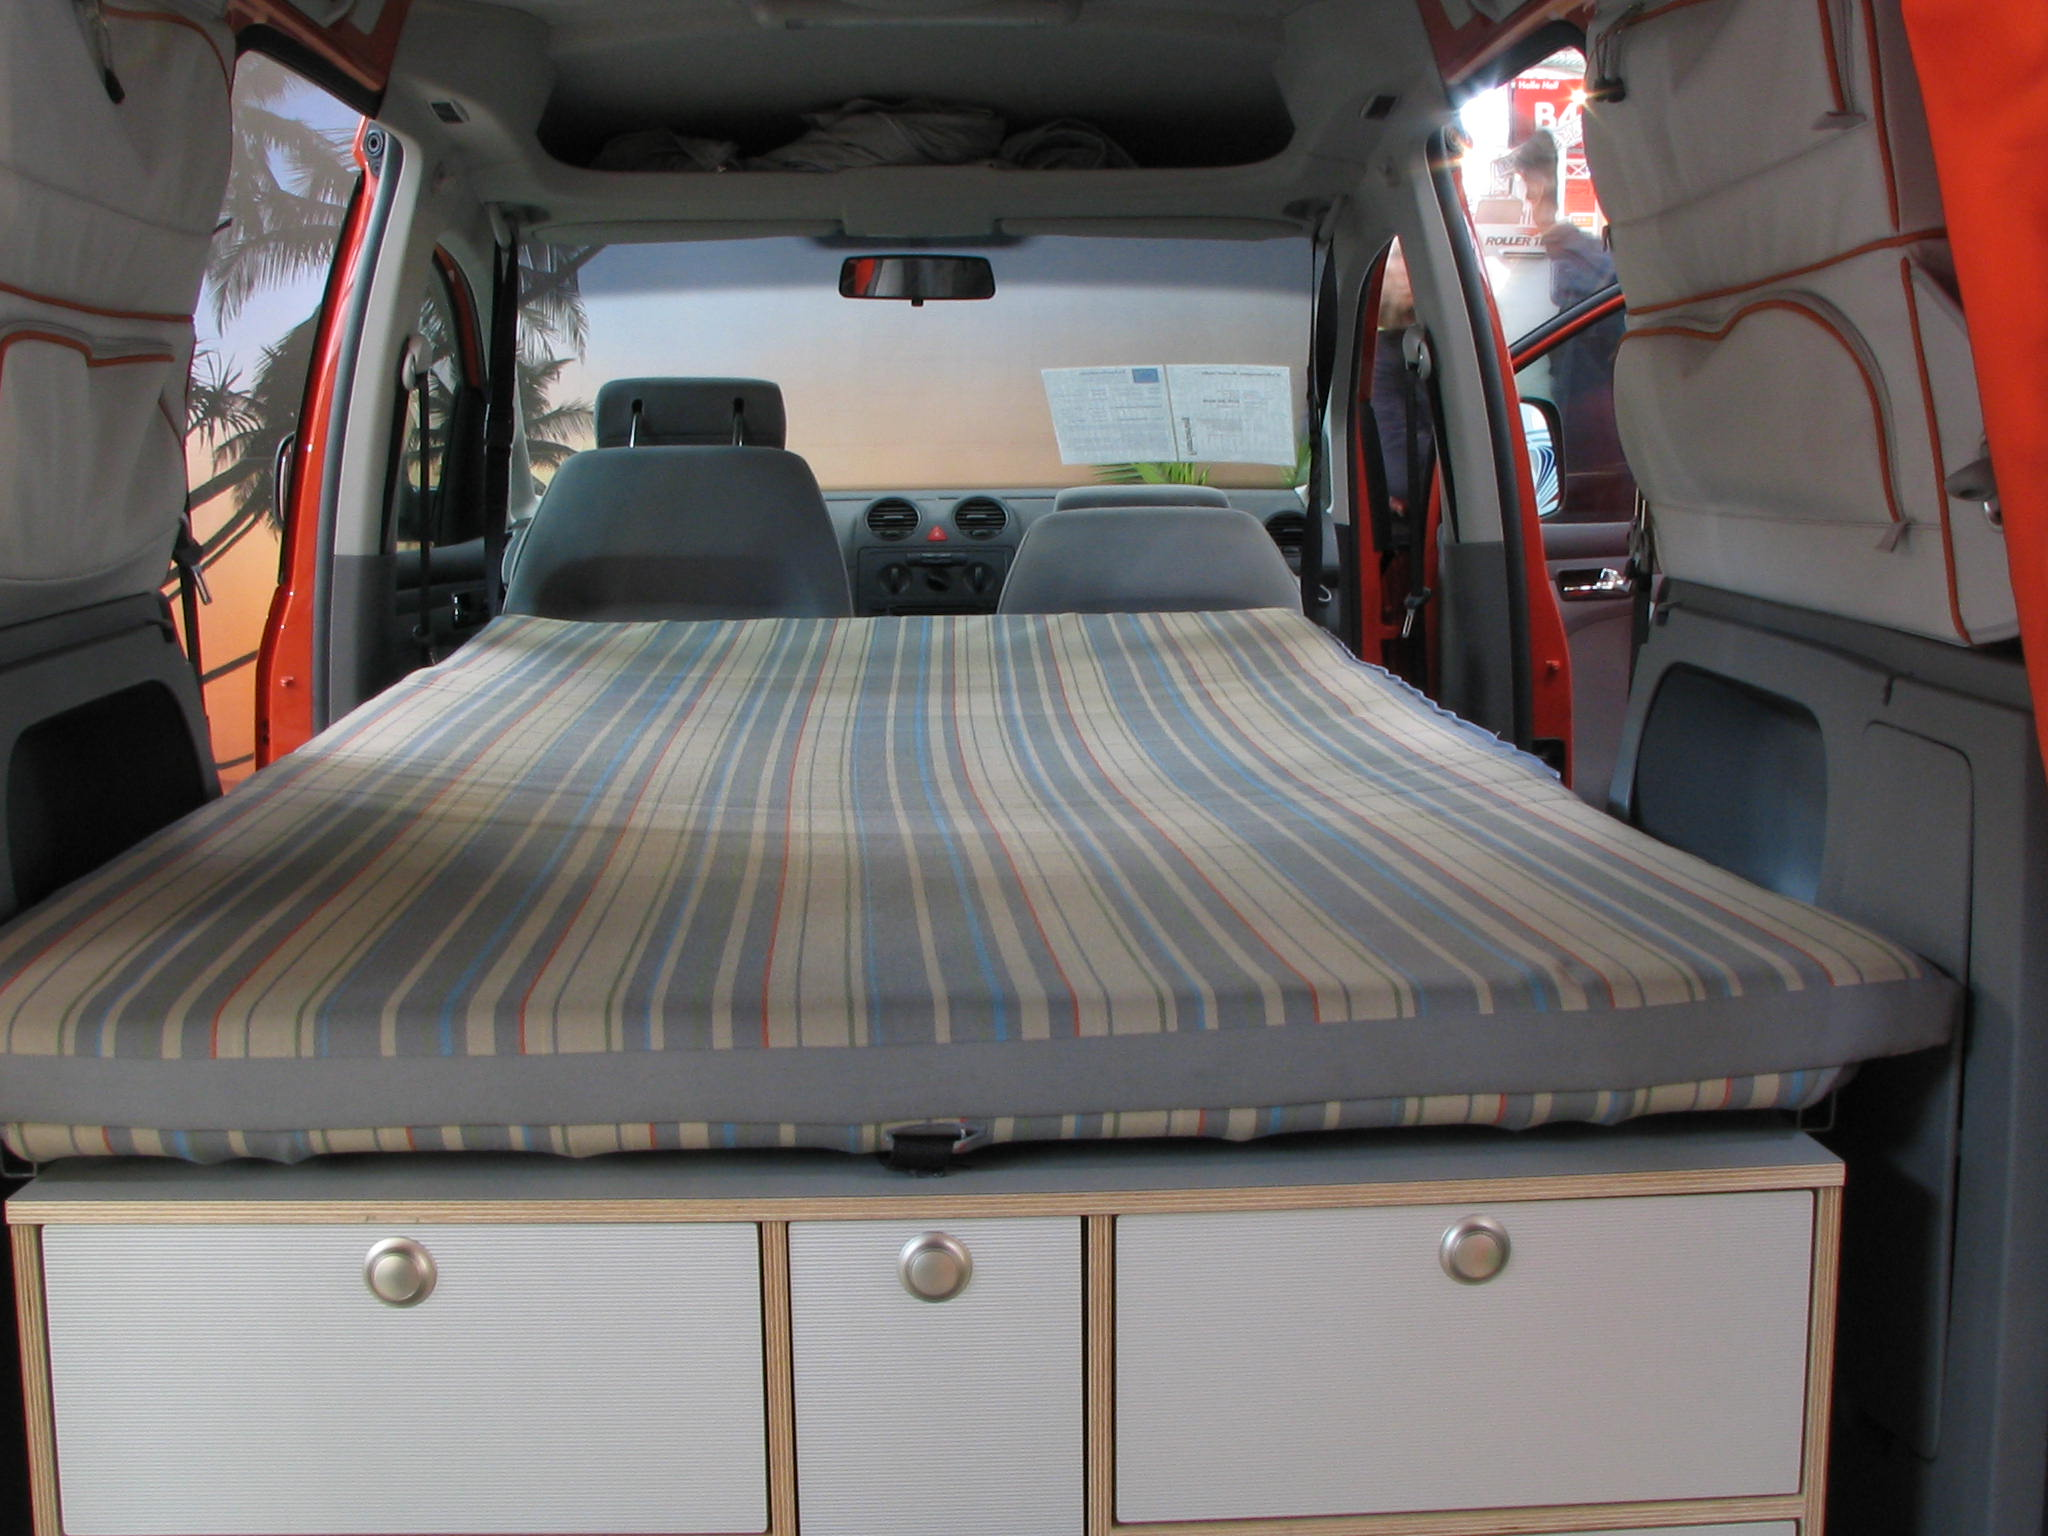 vw caddy tramper photos 6 on better parts ltd. Black Bedroom Furniture Sets. Home Design Ideas